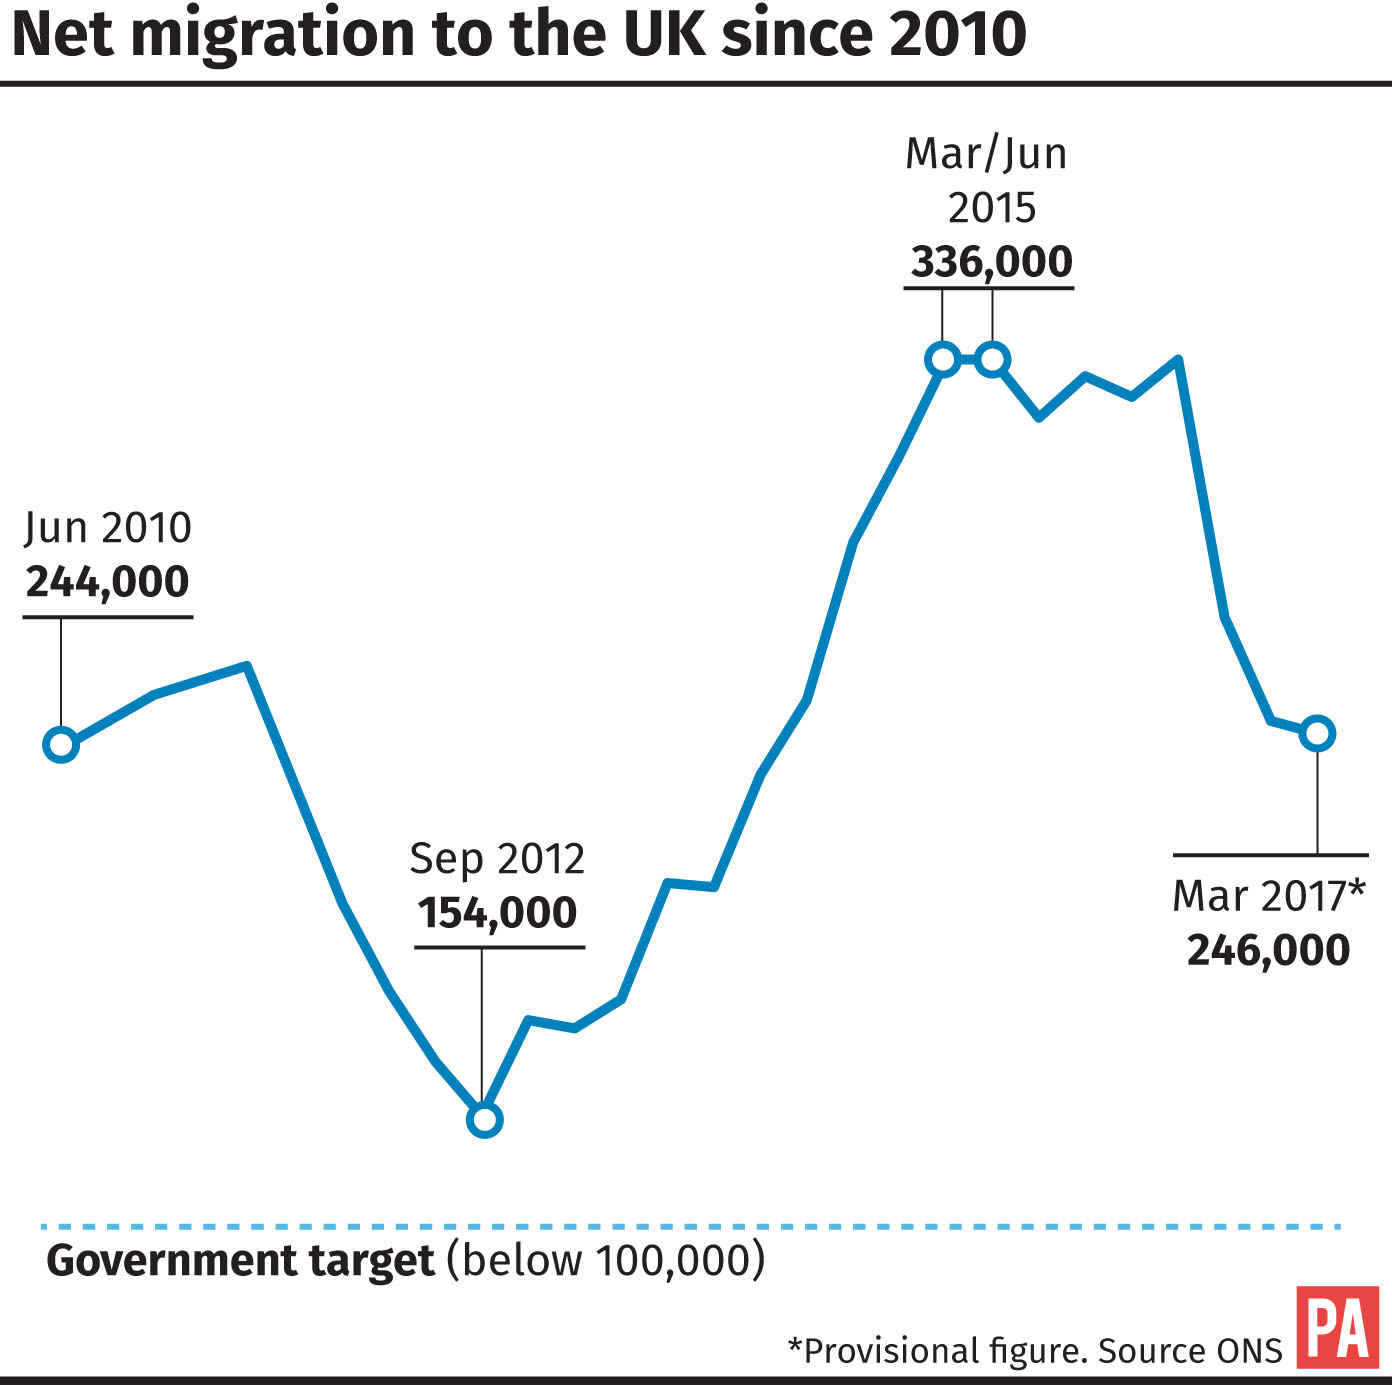 Net migration to the UK since 2010